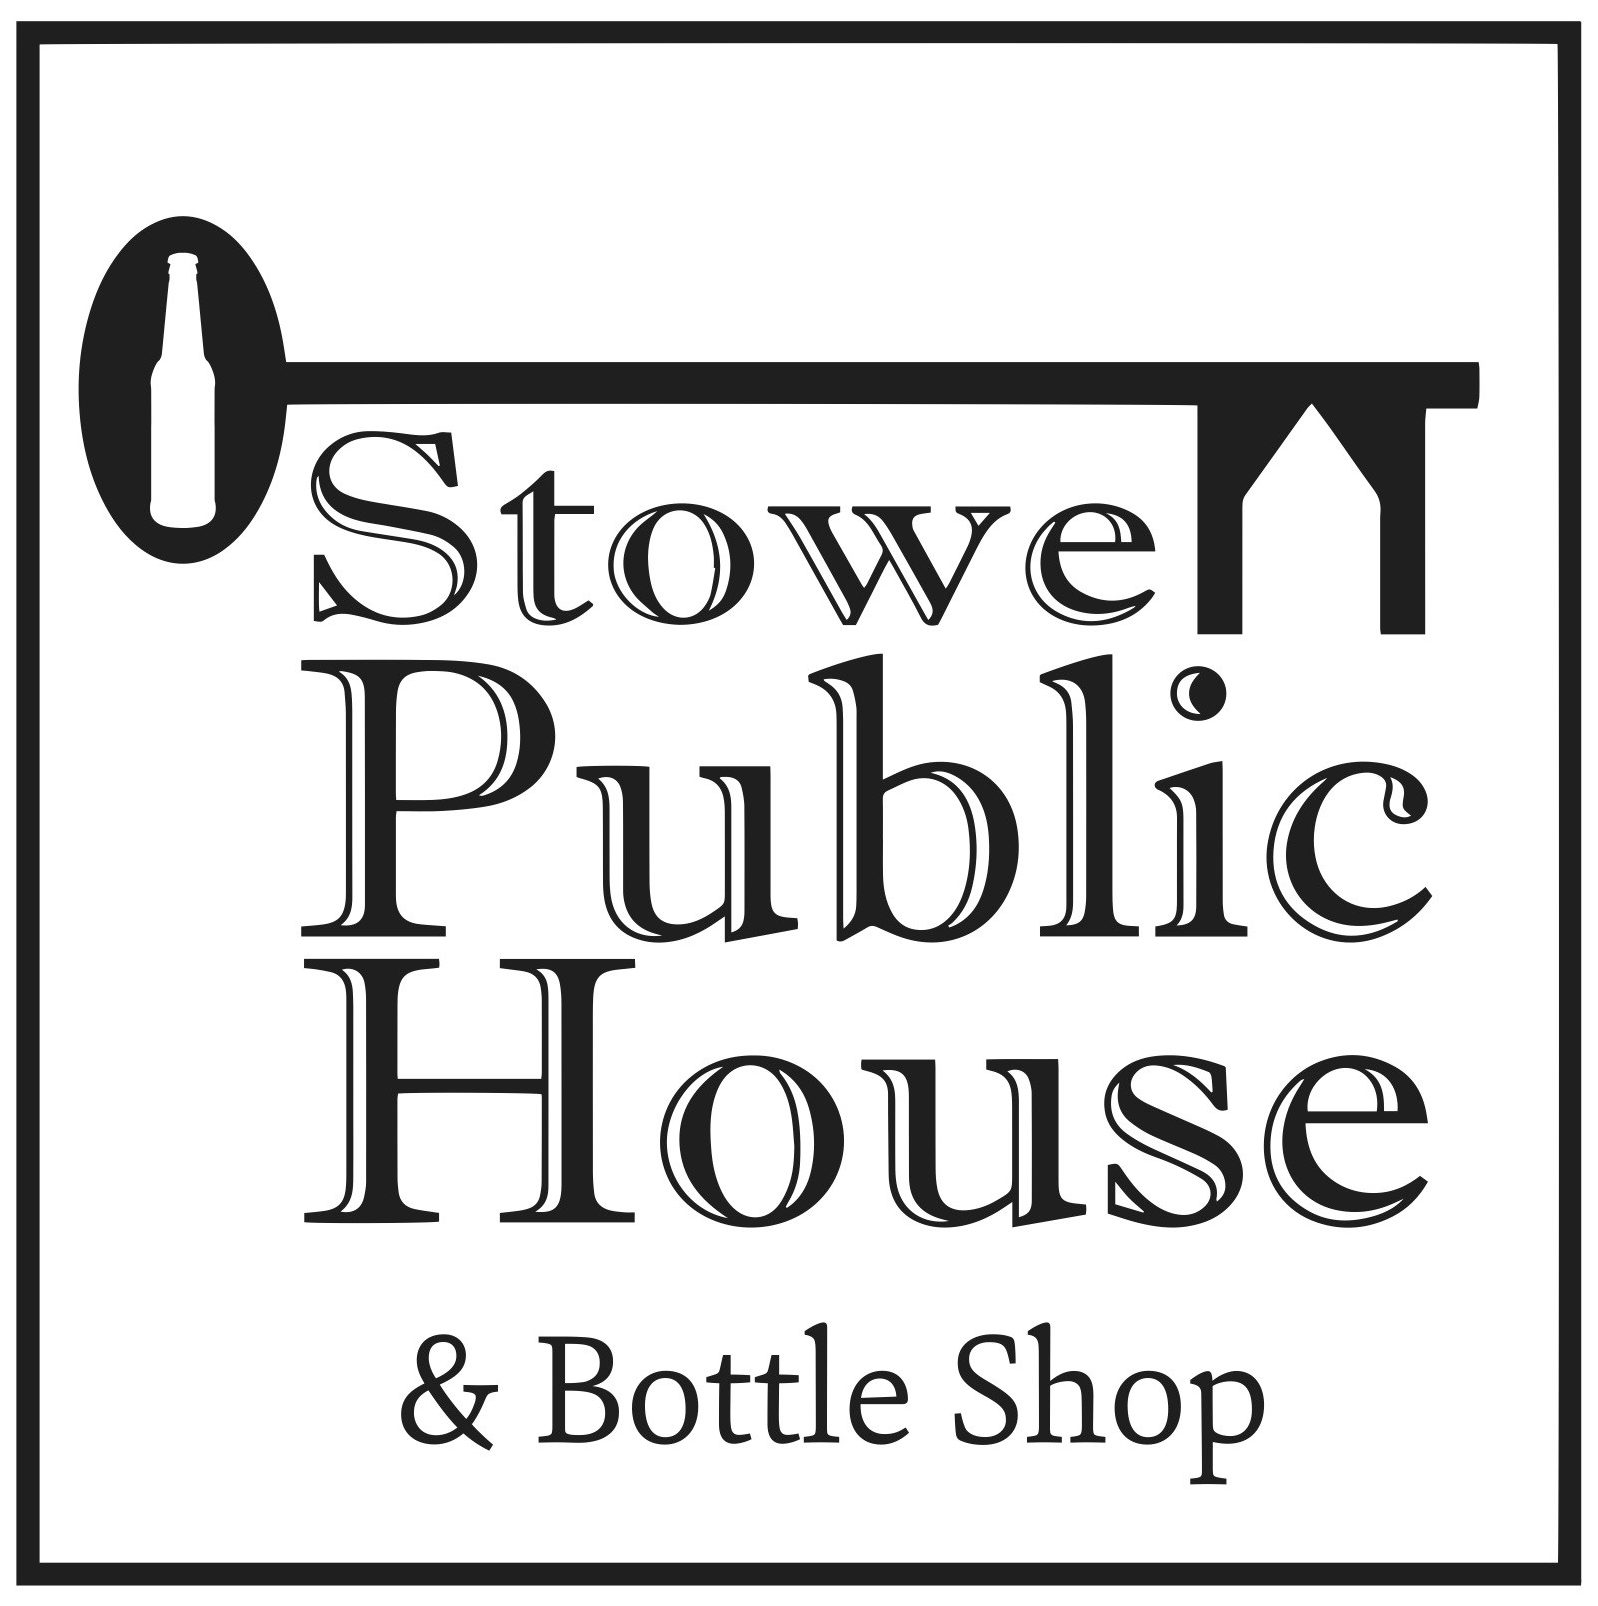 Stowe Public House & Bottle Shop